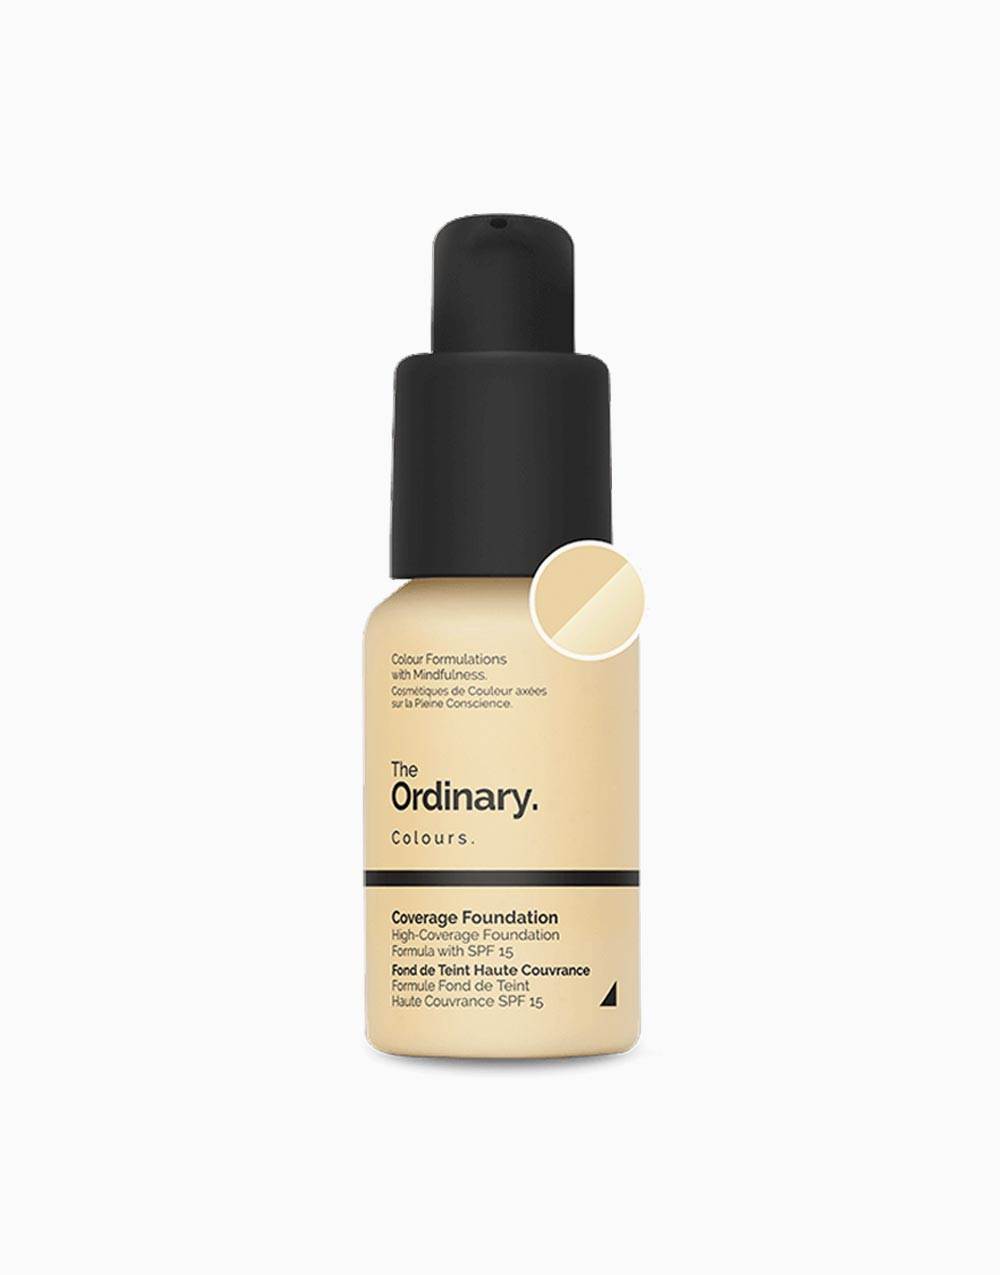 Coverage Foundation by The Ordinary | 1.2YG